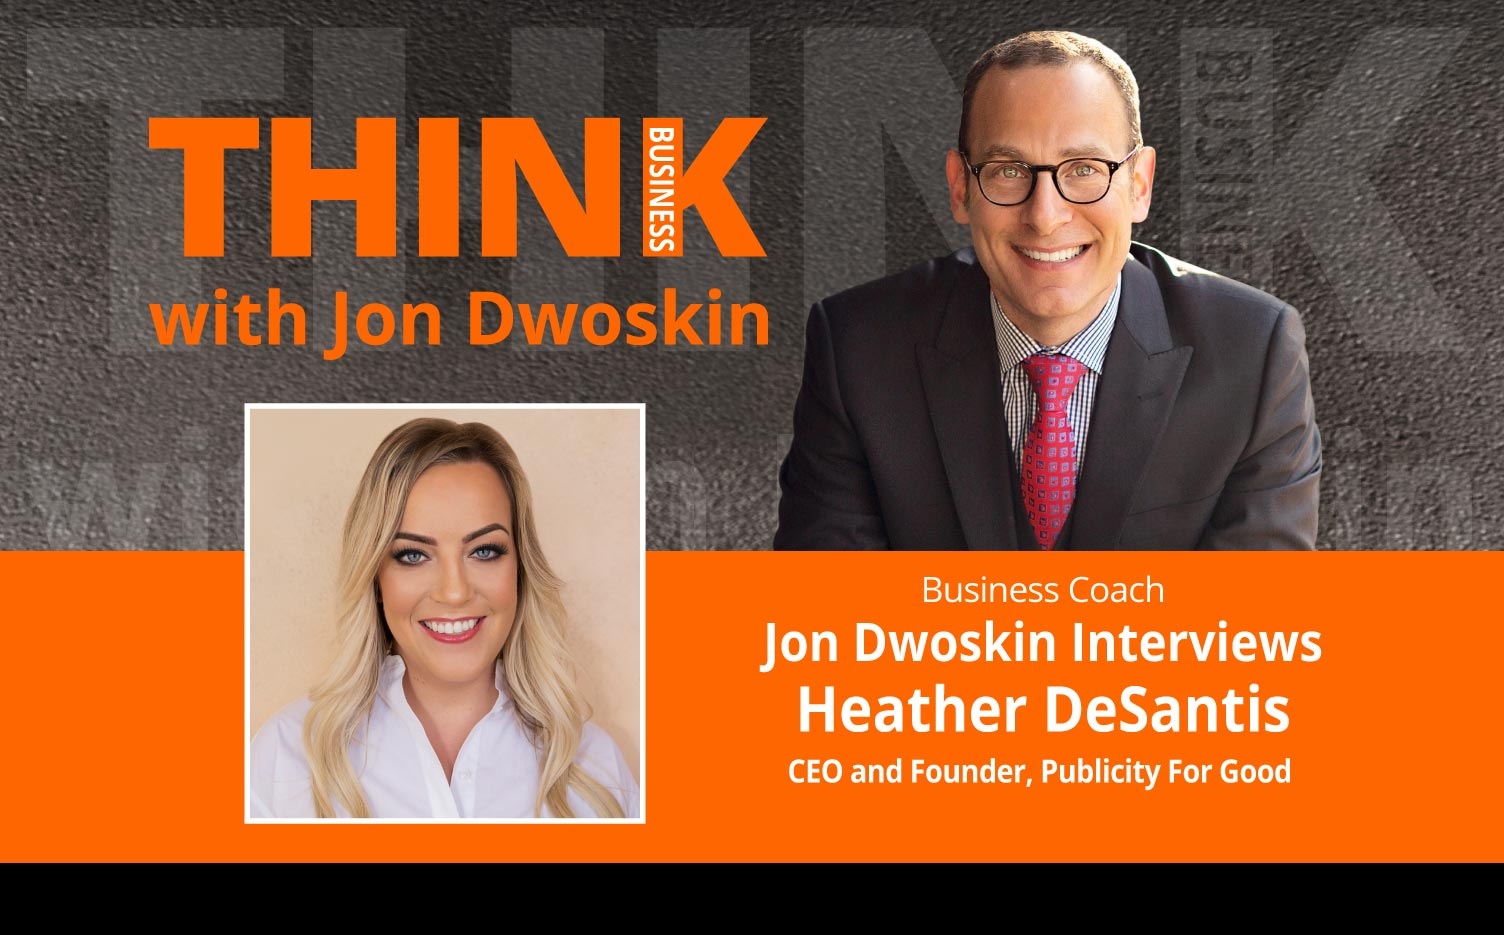 Jon Dwoskin Interviews Heather DeSantis, CEO and Founder, Publicity For Good